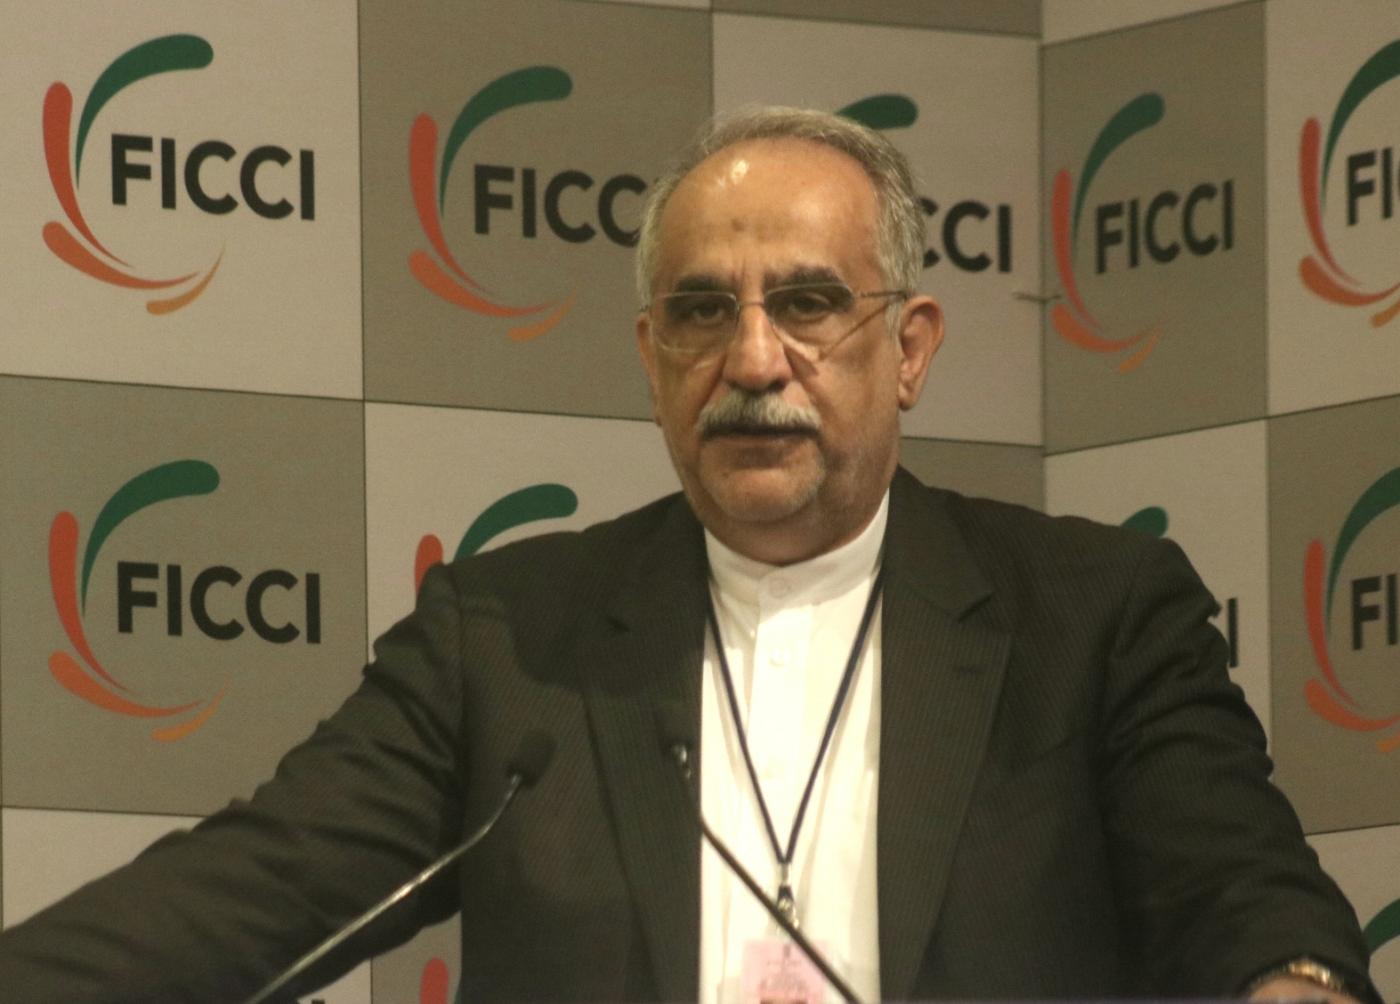 New Delhi: Iran's Finance and Economic Affairs Minister Masoud Karbasian addressing a gathering at FICCI in New Delhi on Feb. 17, 2018. (Photo: IANS) by .